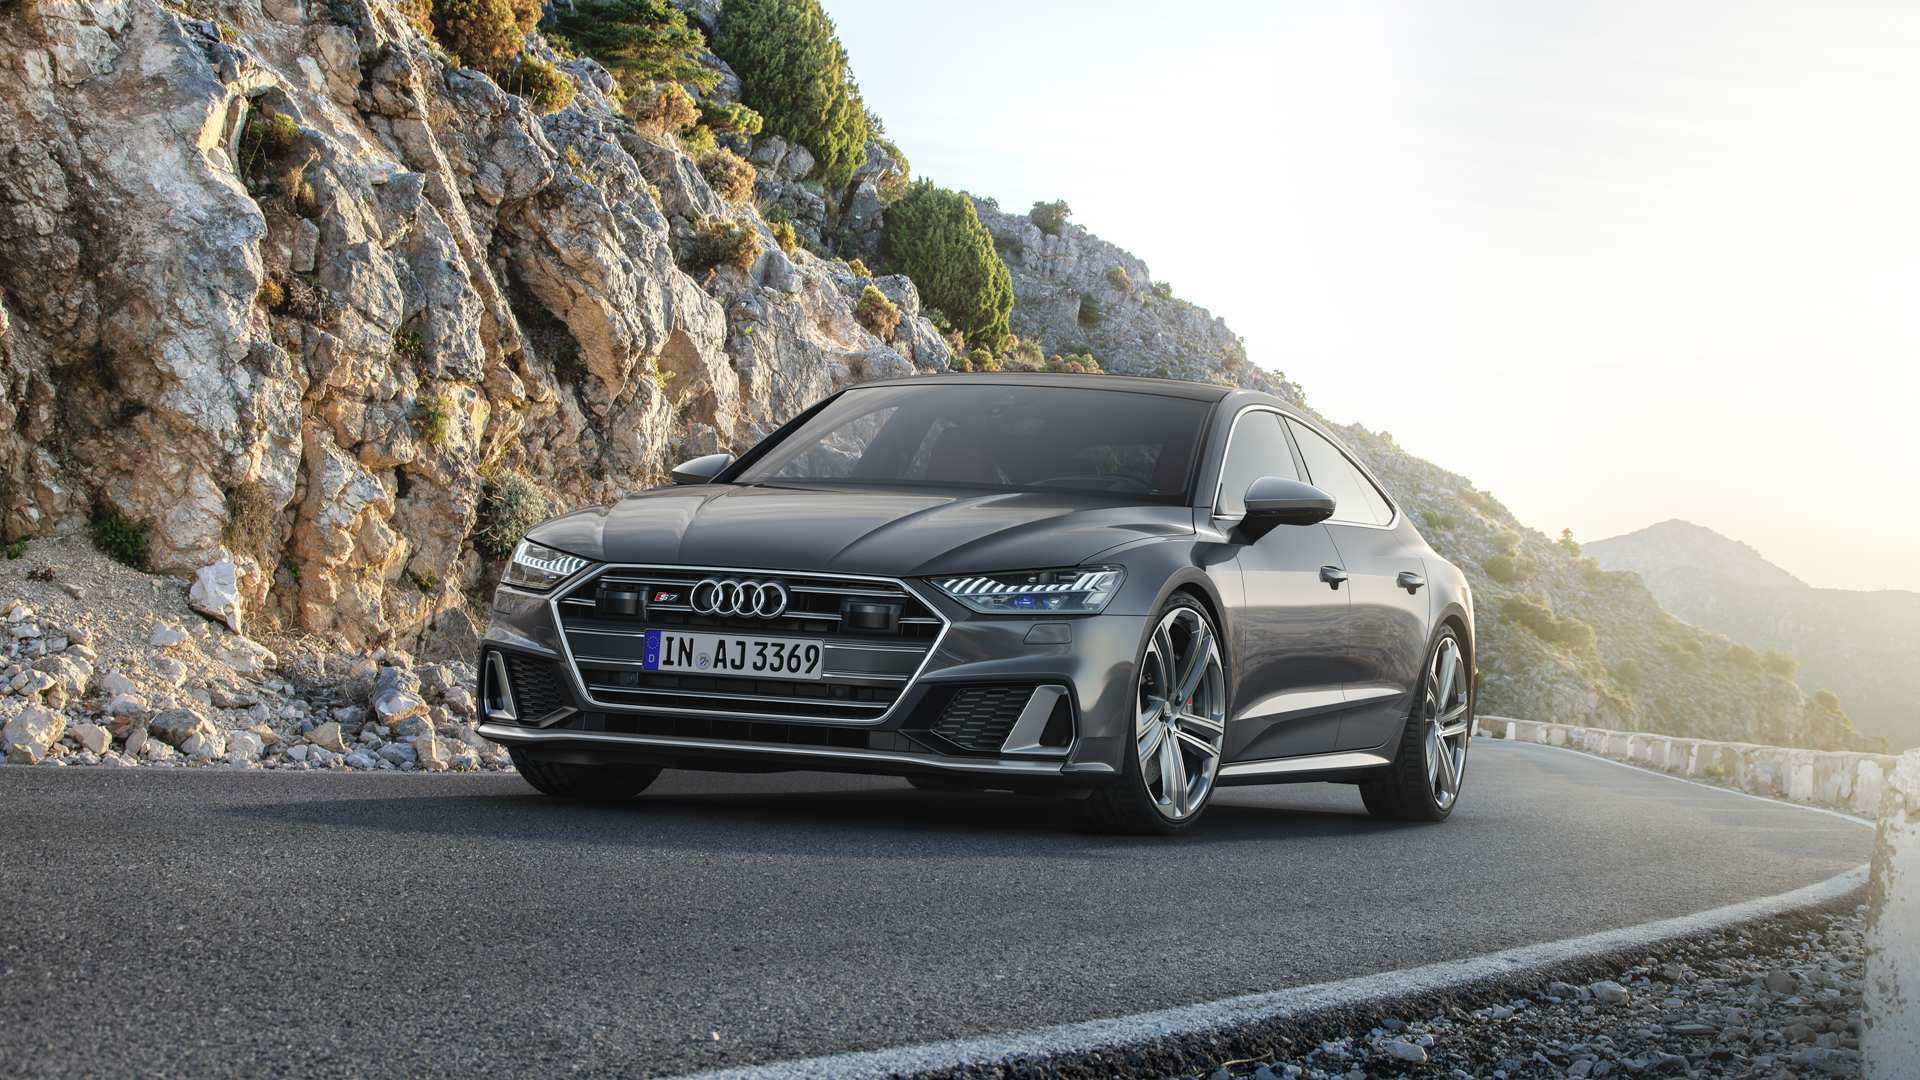 32 The Best 2020 Audi S7 Configurations